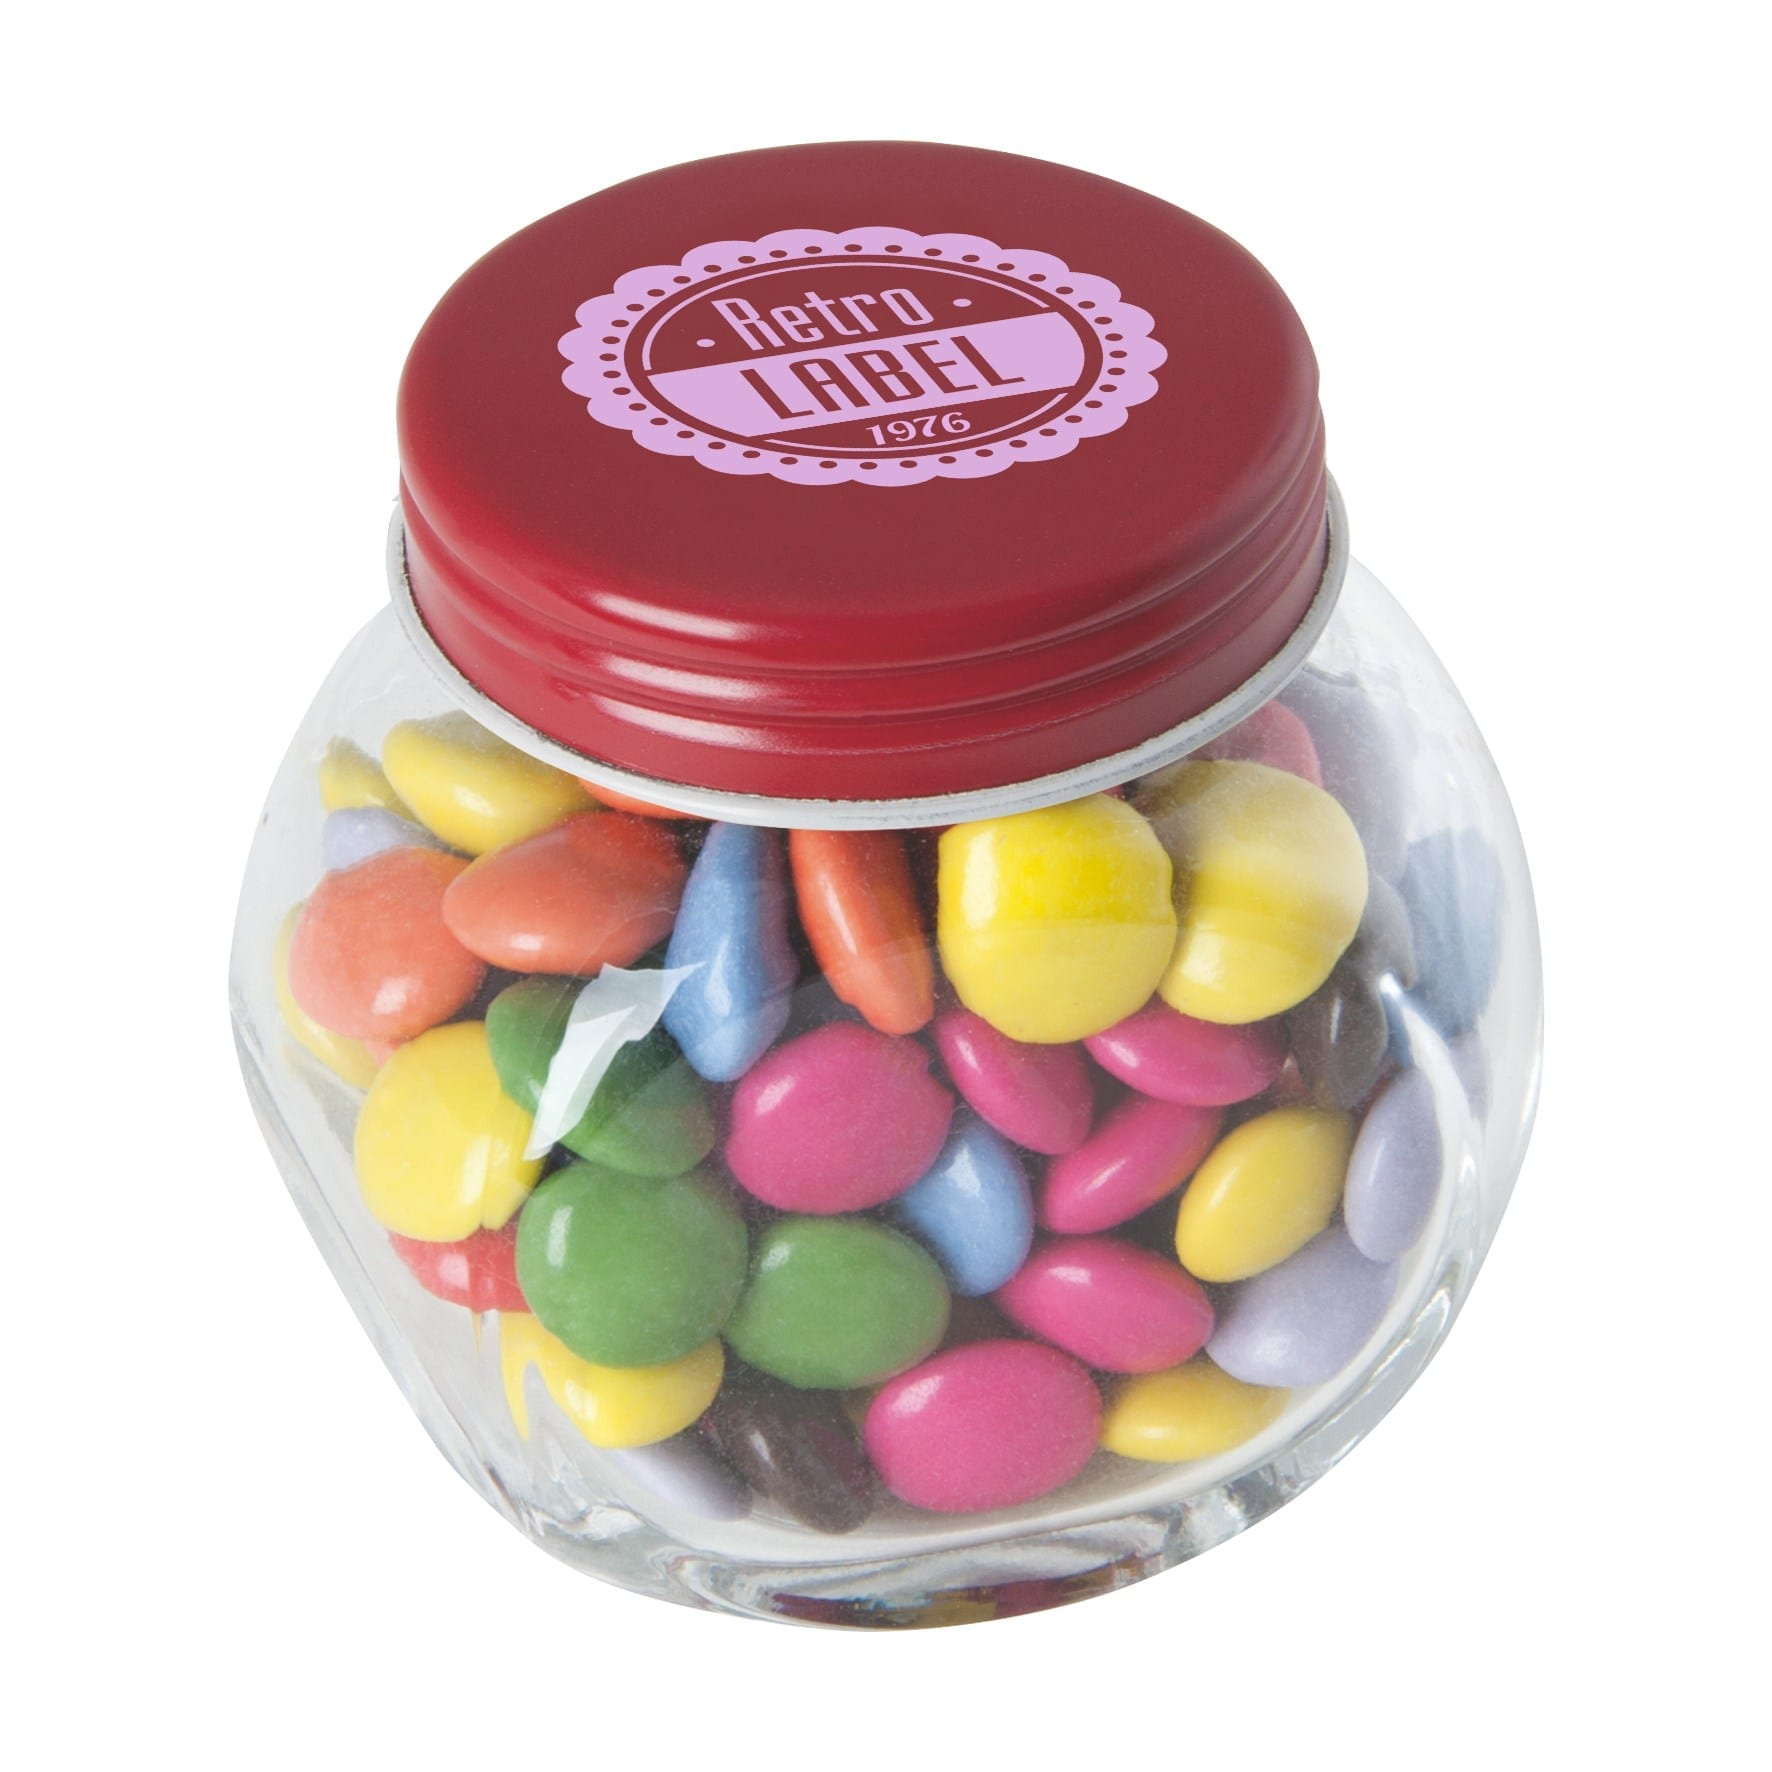 Small glass jar with Sweet